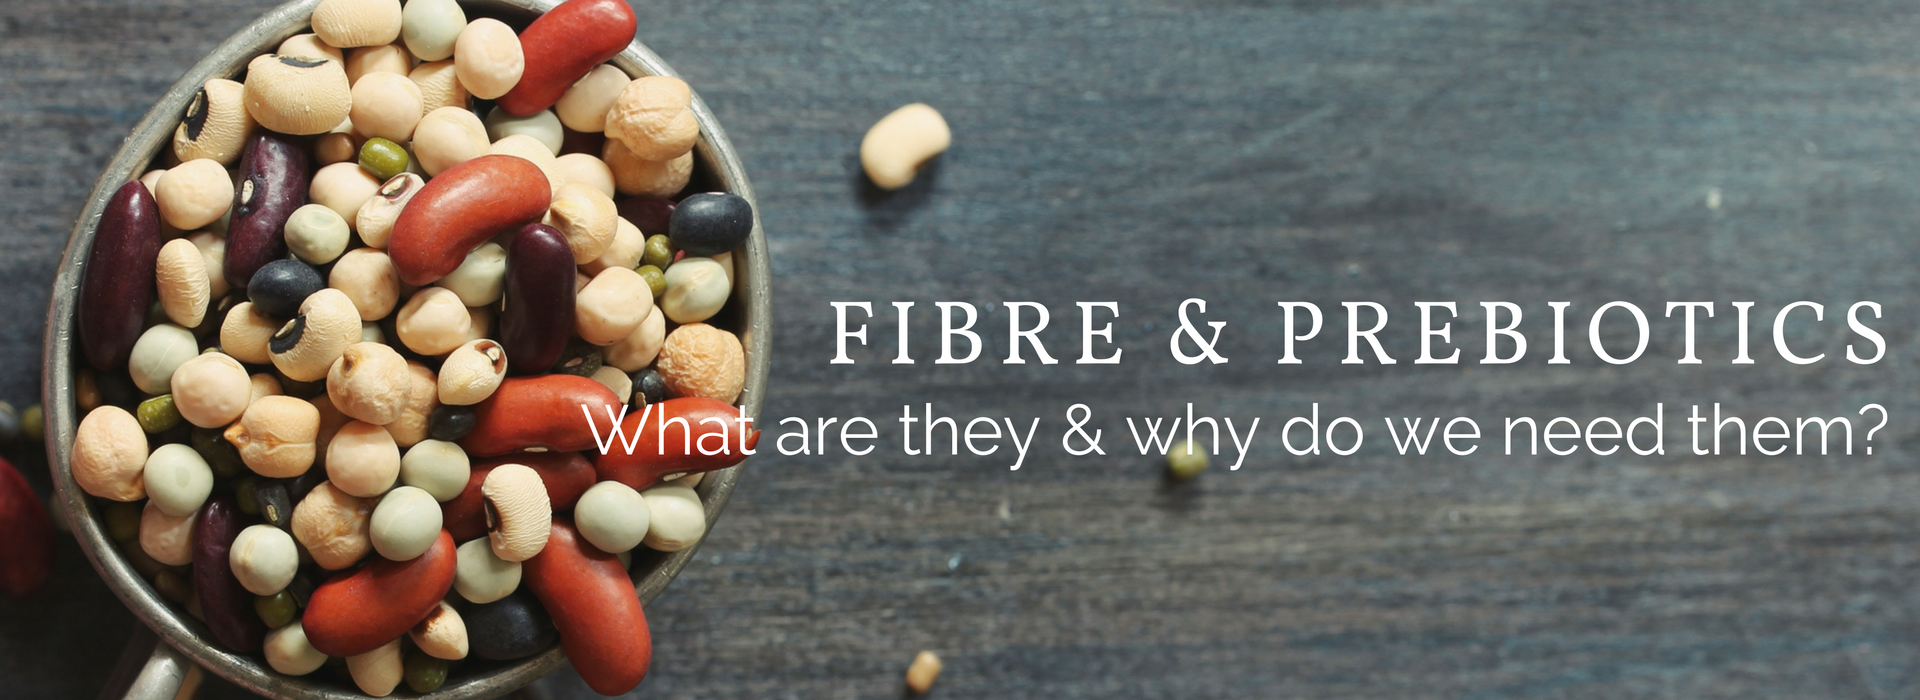 Fibre and prebiotics; what are they and why do we need them?